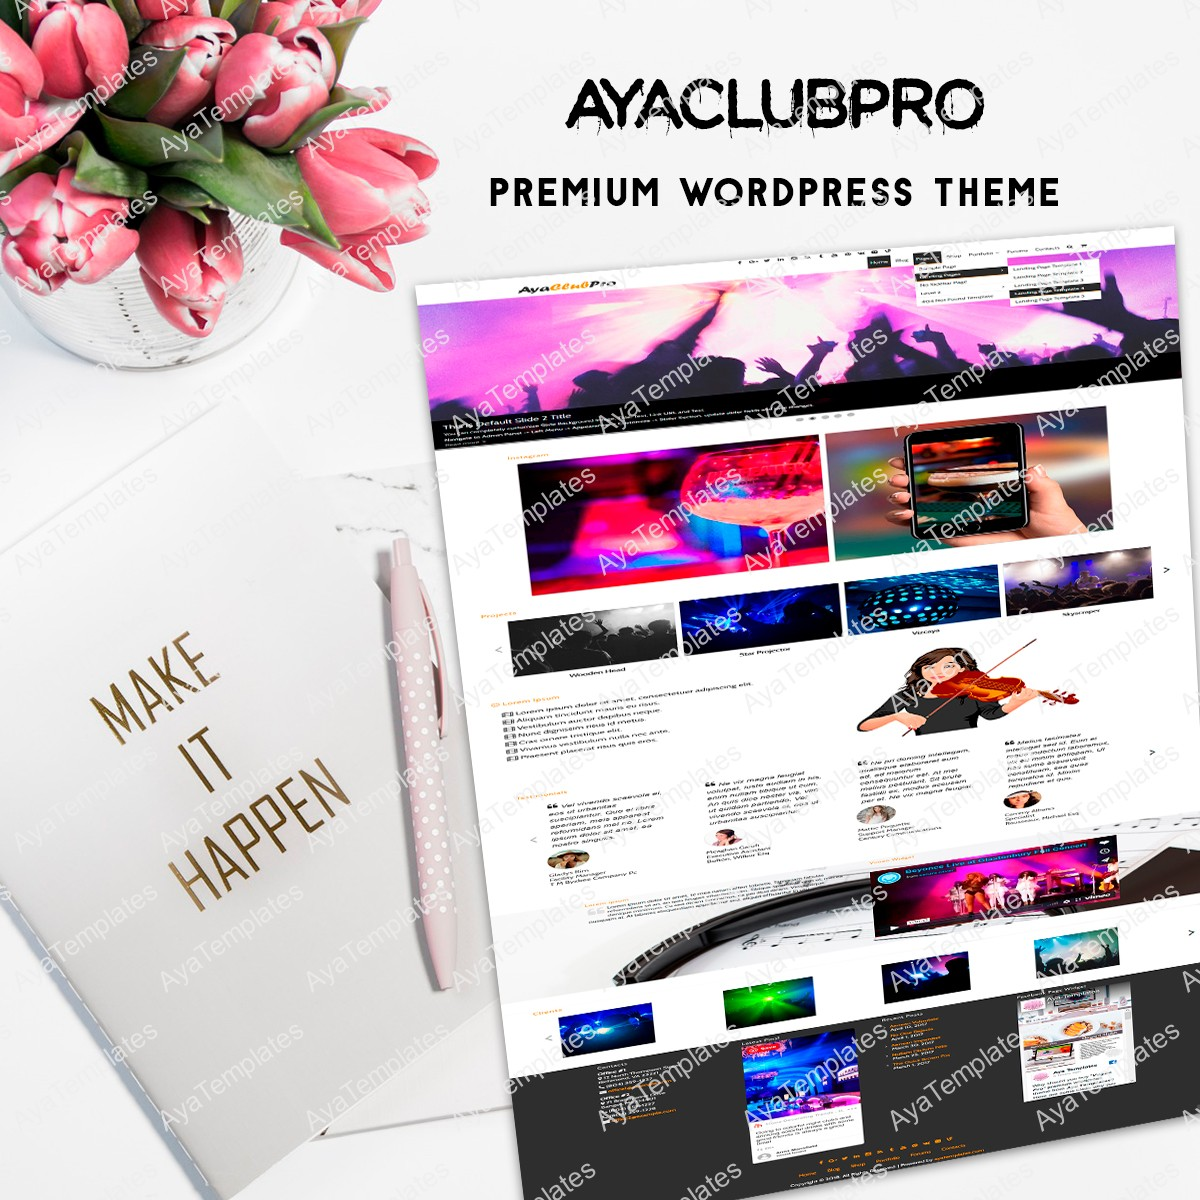 aya-club-pro-premium-wordpress-theme-mockup